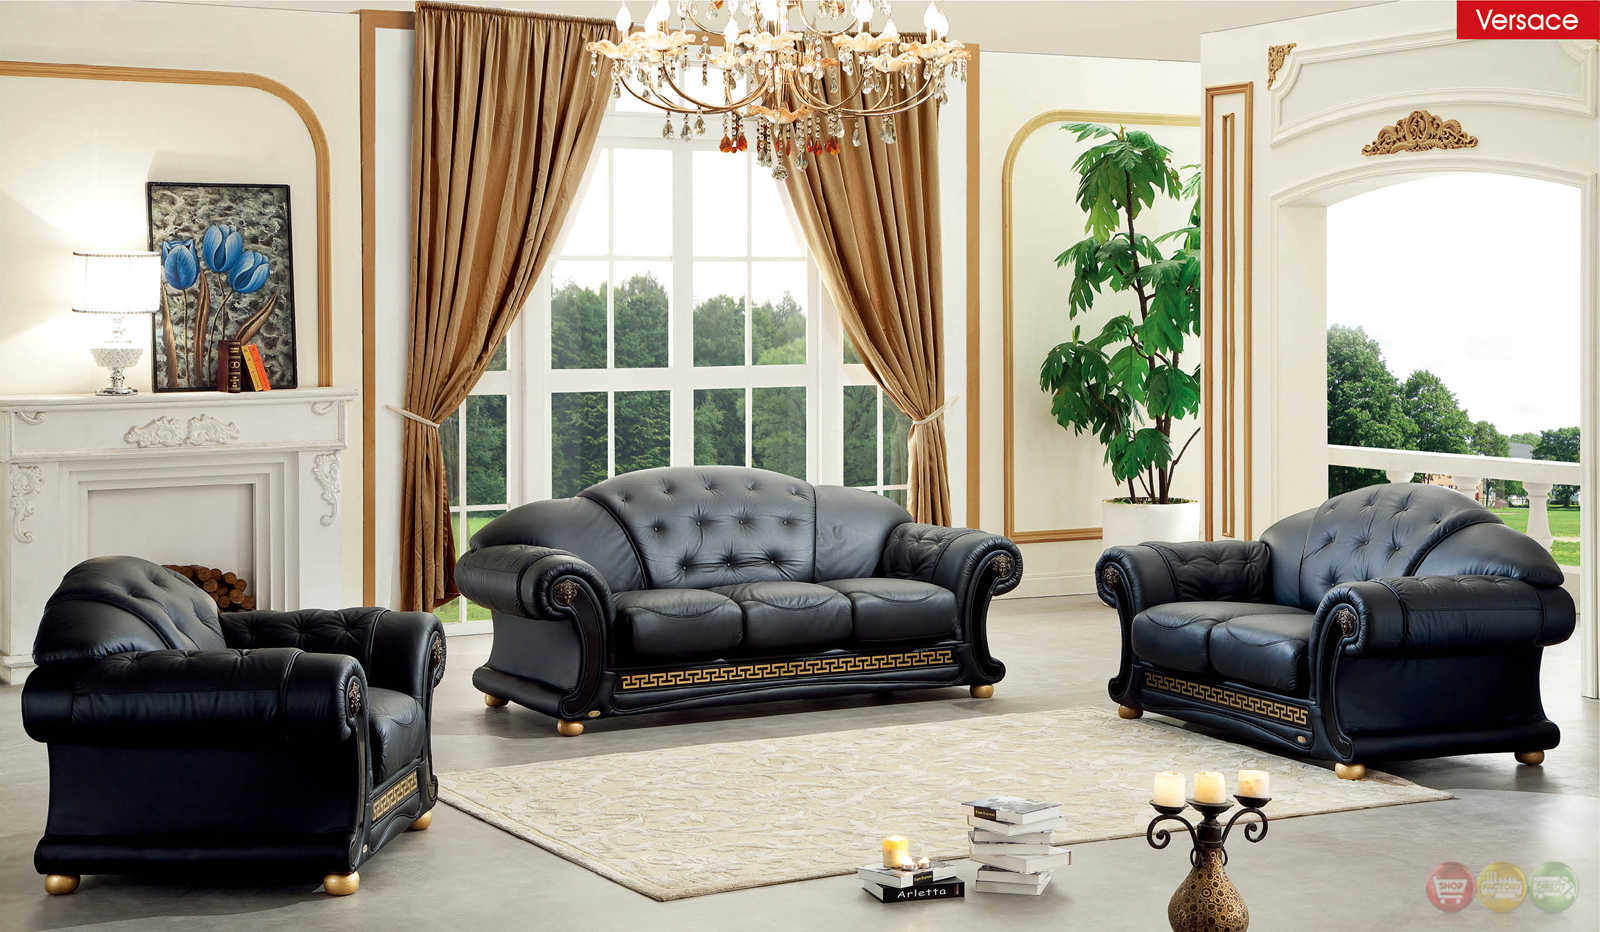 versace black italian top grain leather luxurious living room sofa set. Interior Design Ideas. Home Design Ideas